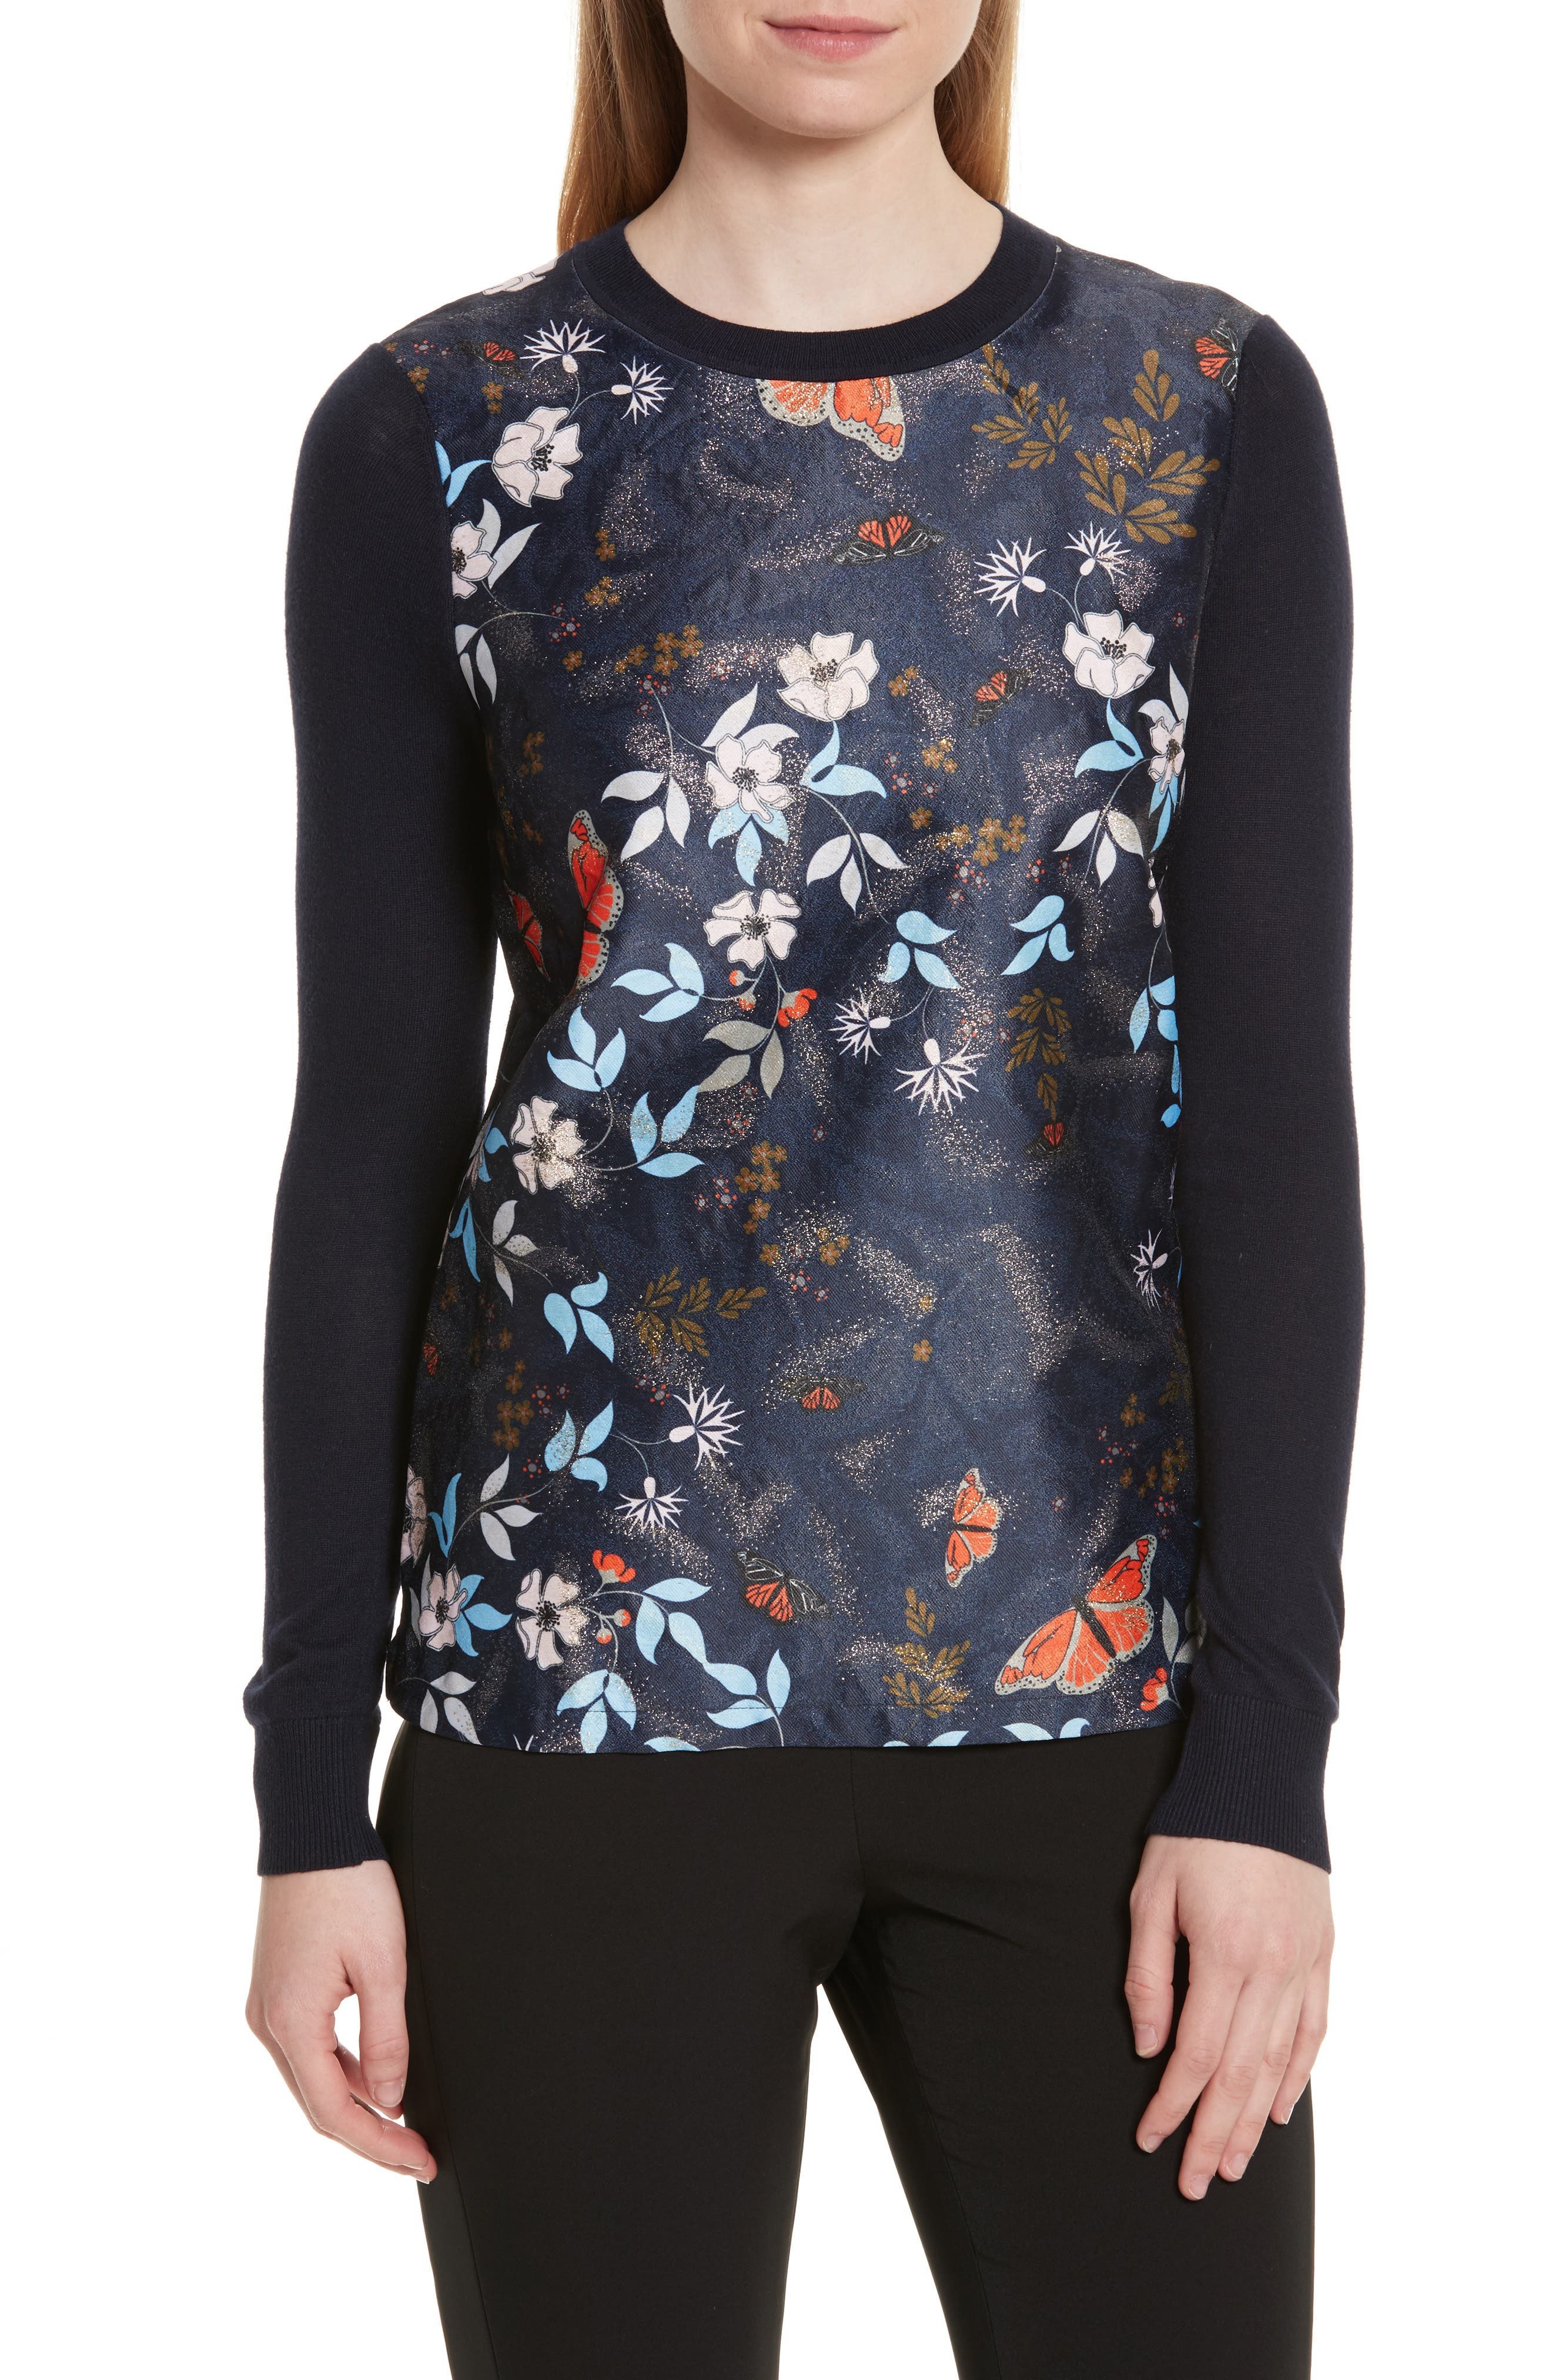 Khlo Kyoto Gardens Jacquard Sweater,                         Main,                         color, 410